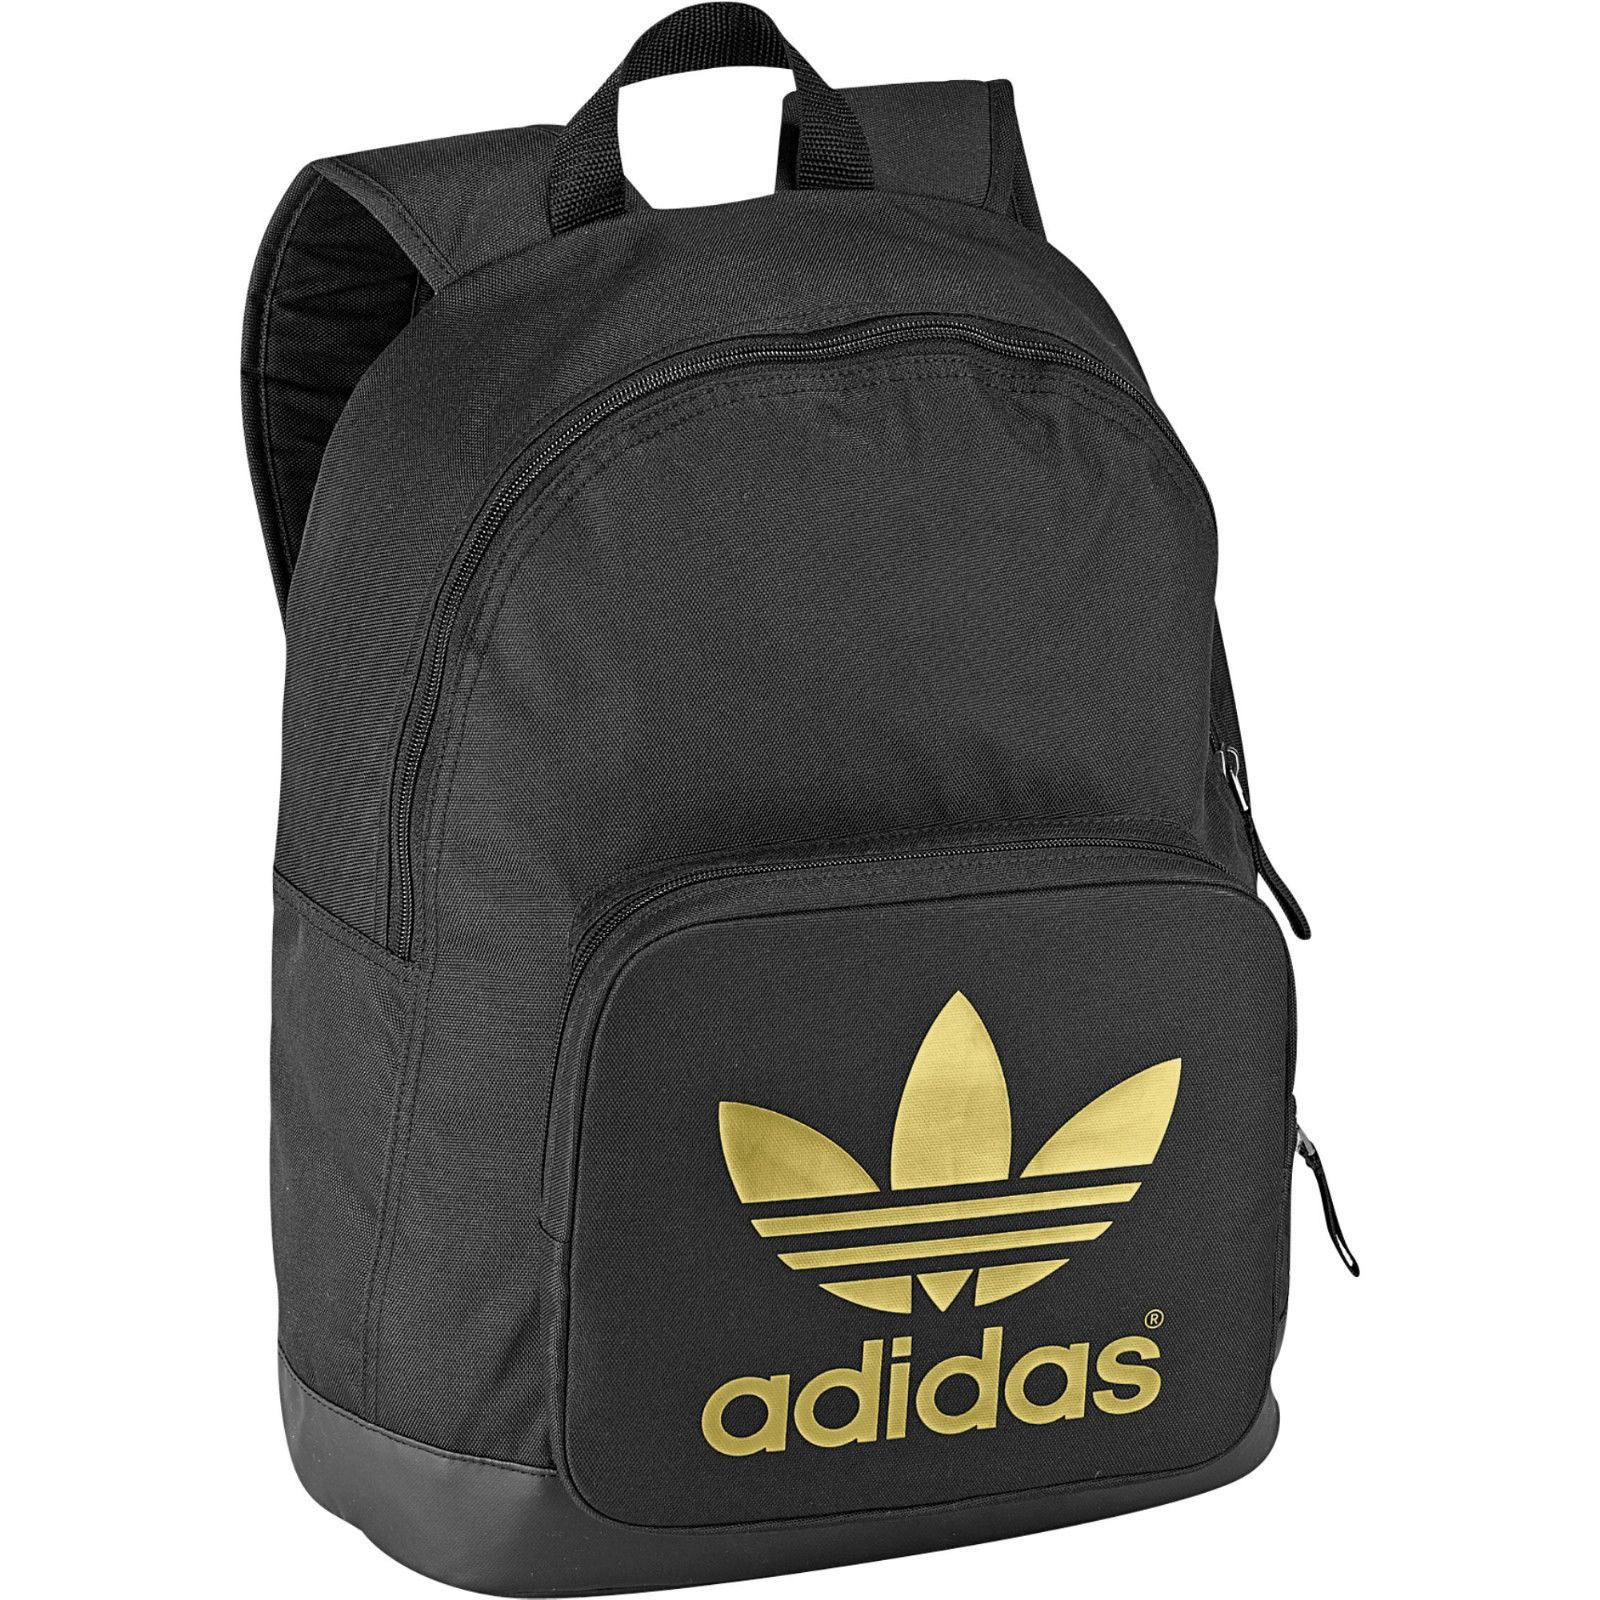 Buy gold adidas bag   OFF44% Discounted 528b52a50a0f2